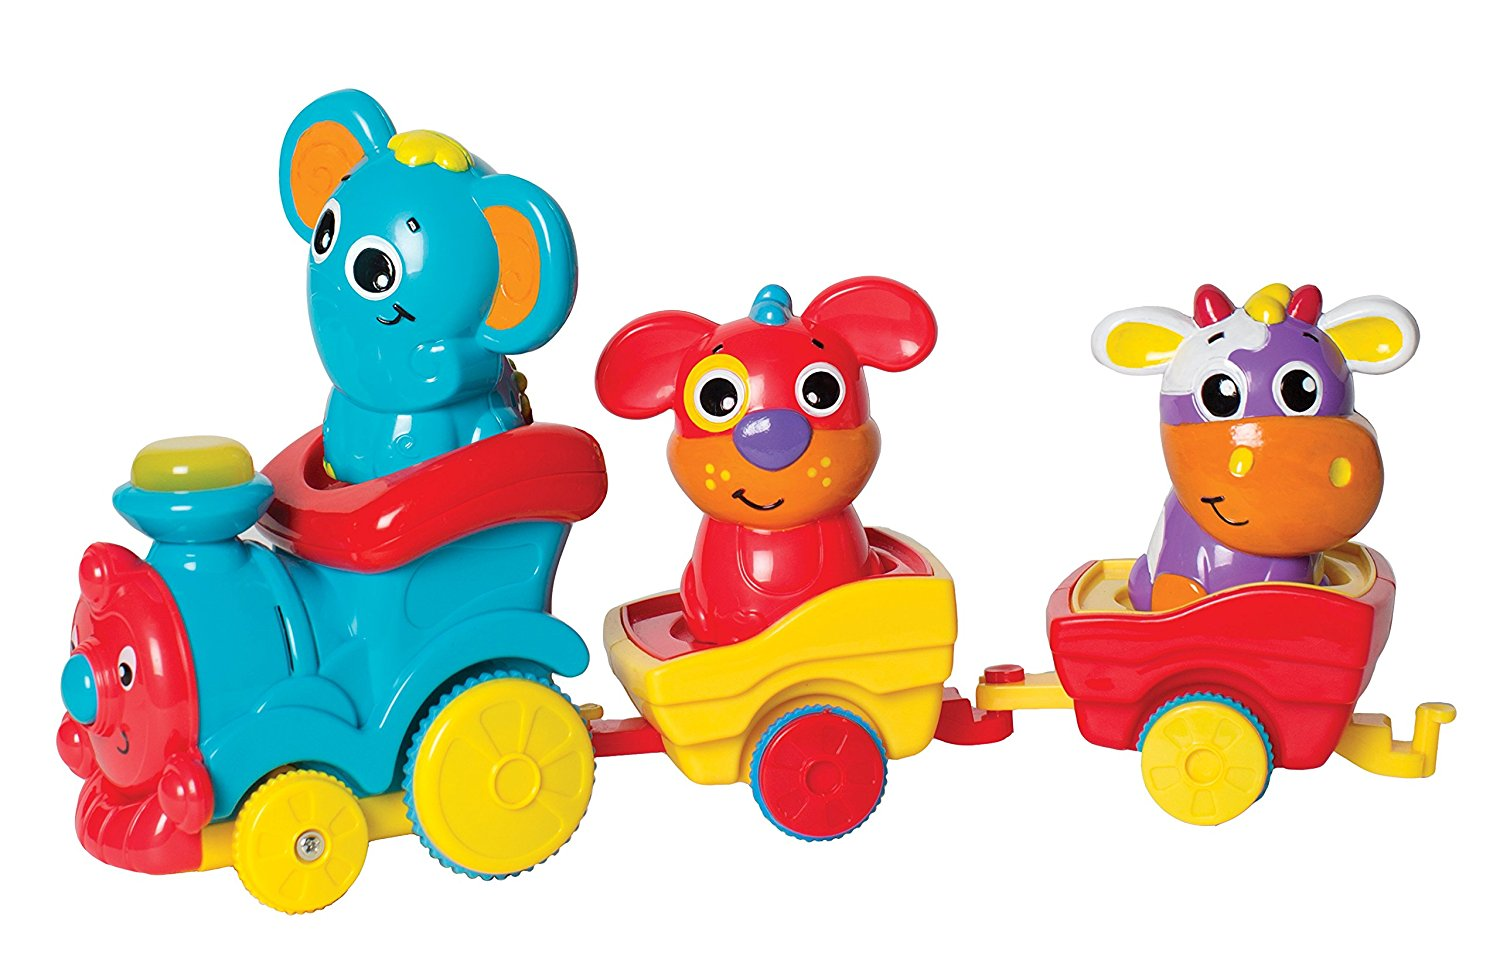 6385511 Fun Friends Choo Choo Train for Baby STEM Toy, Features lights that flash to the beat of the music By... by Playgro